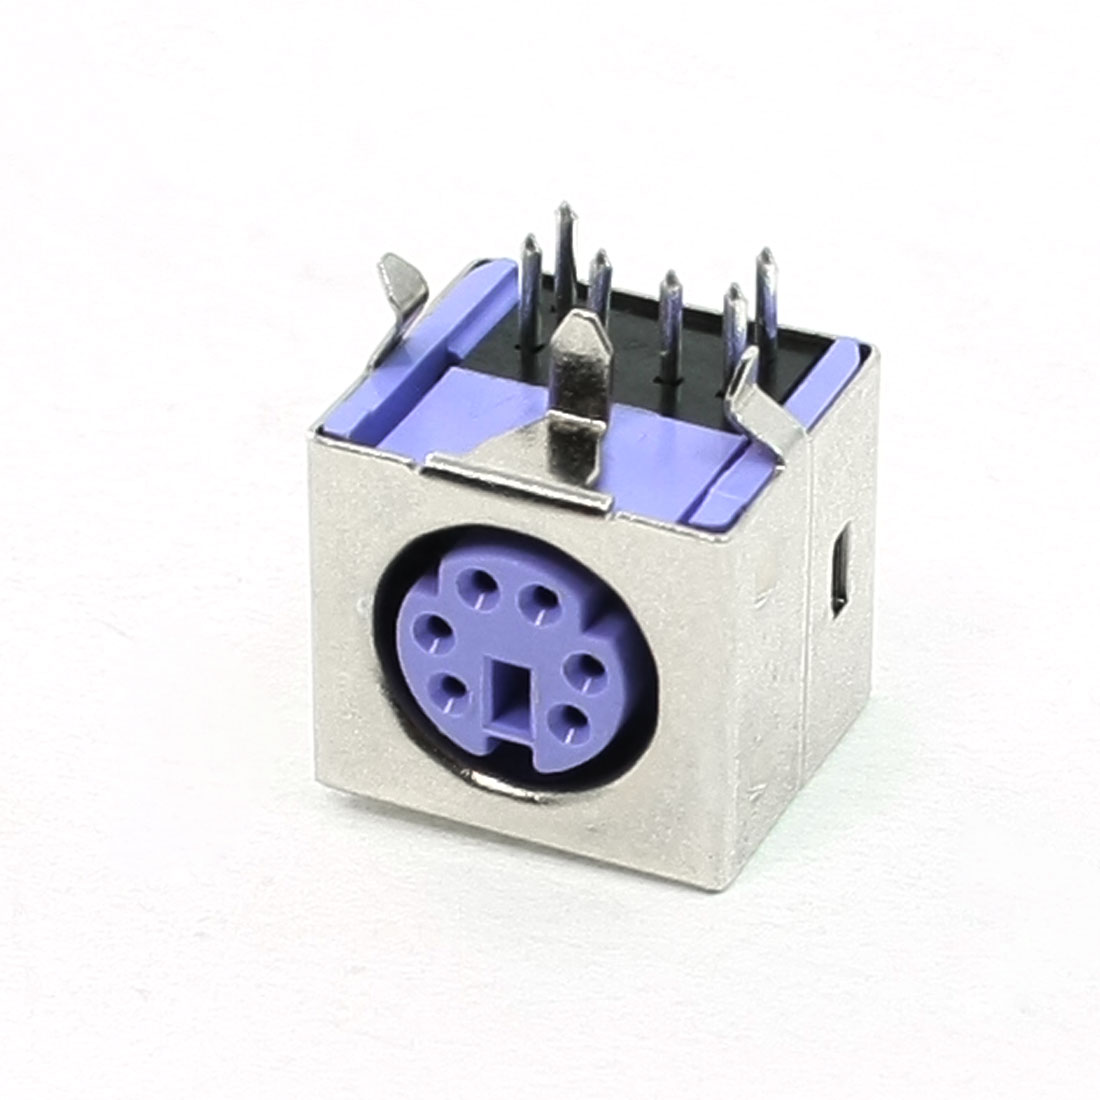 PS/2 Female Connector Socket Jack Port for Computer Keyboard Mouse